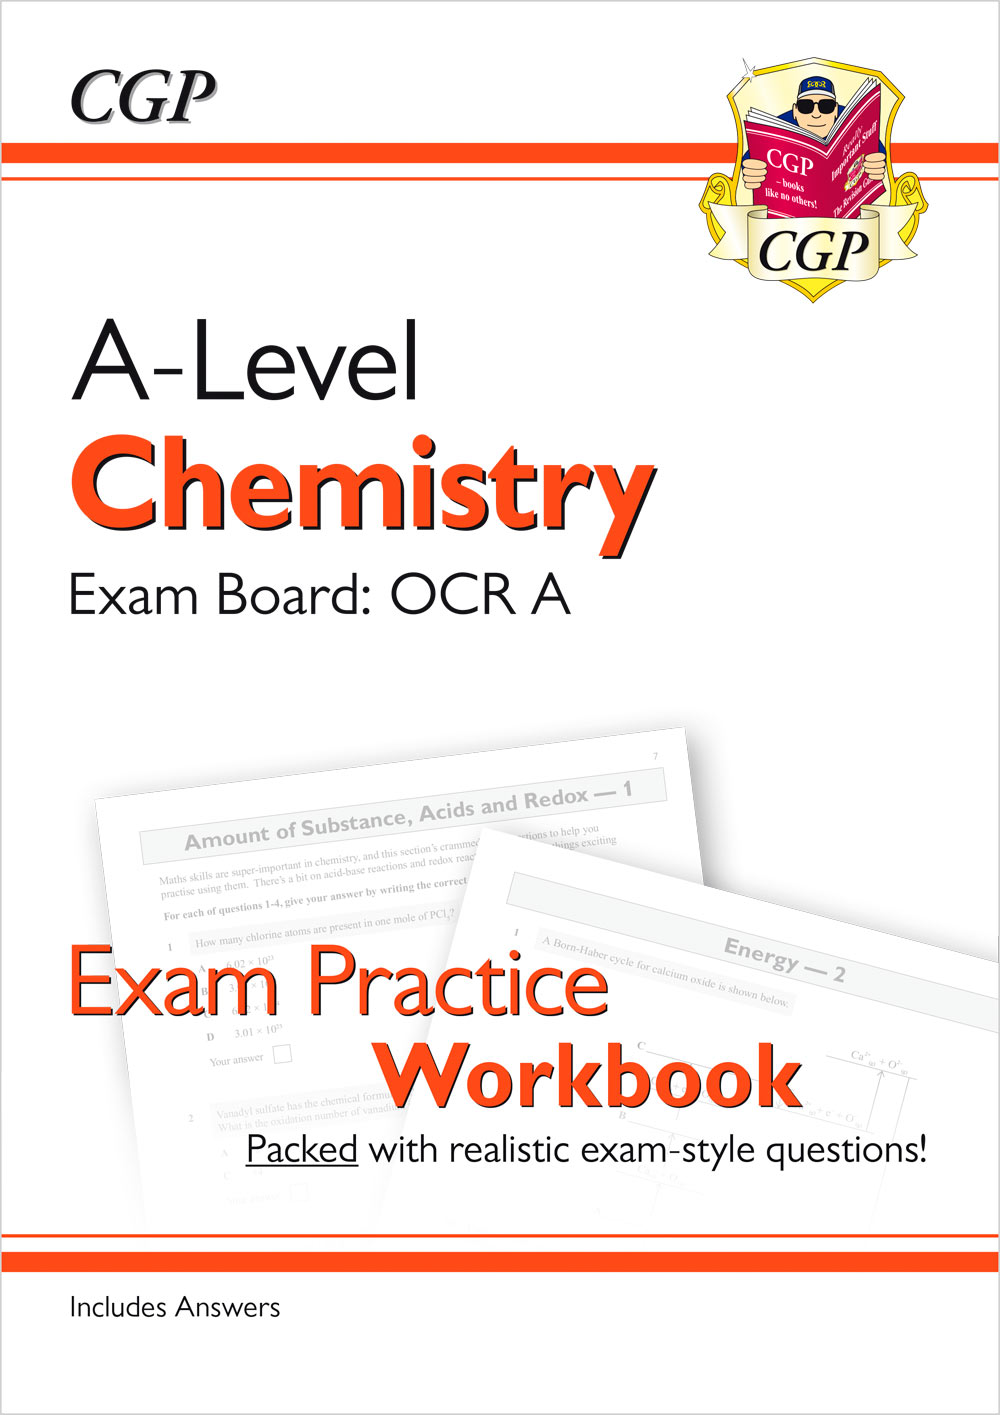 CRAQ71 - New A-Level Chemistry for 2018: OCR A Year 1 & 2 Exam Practice Workbook - includes Answers